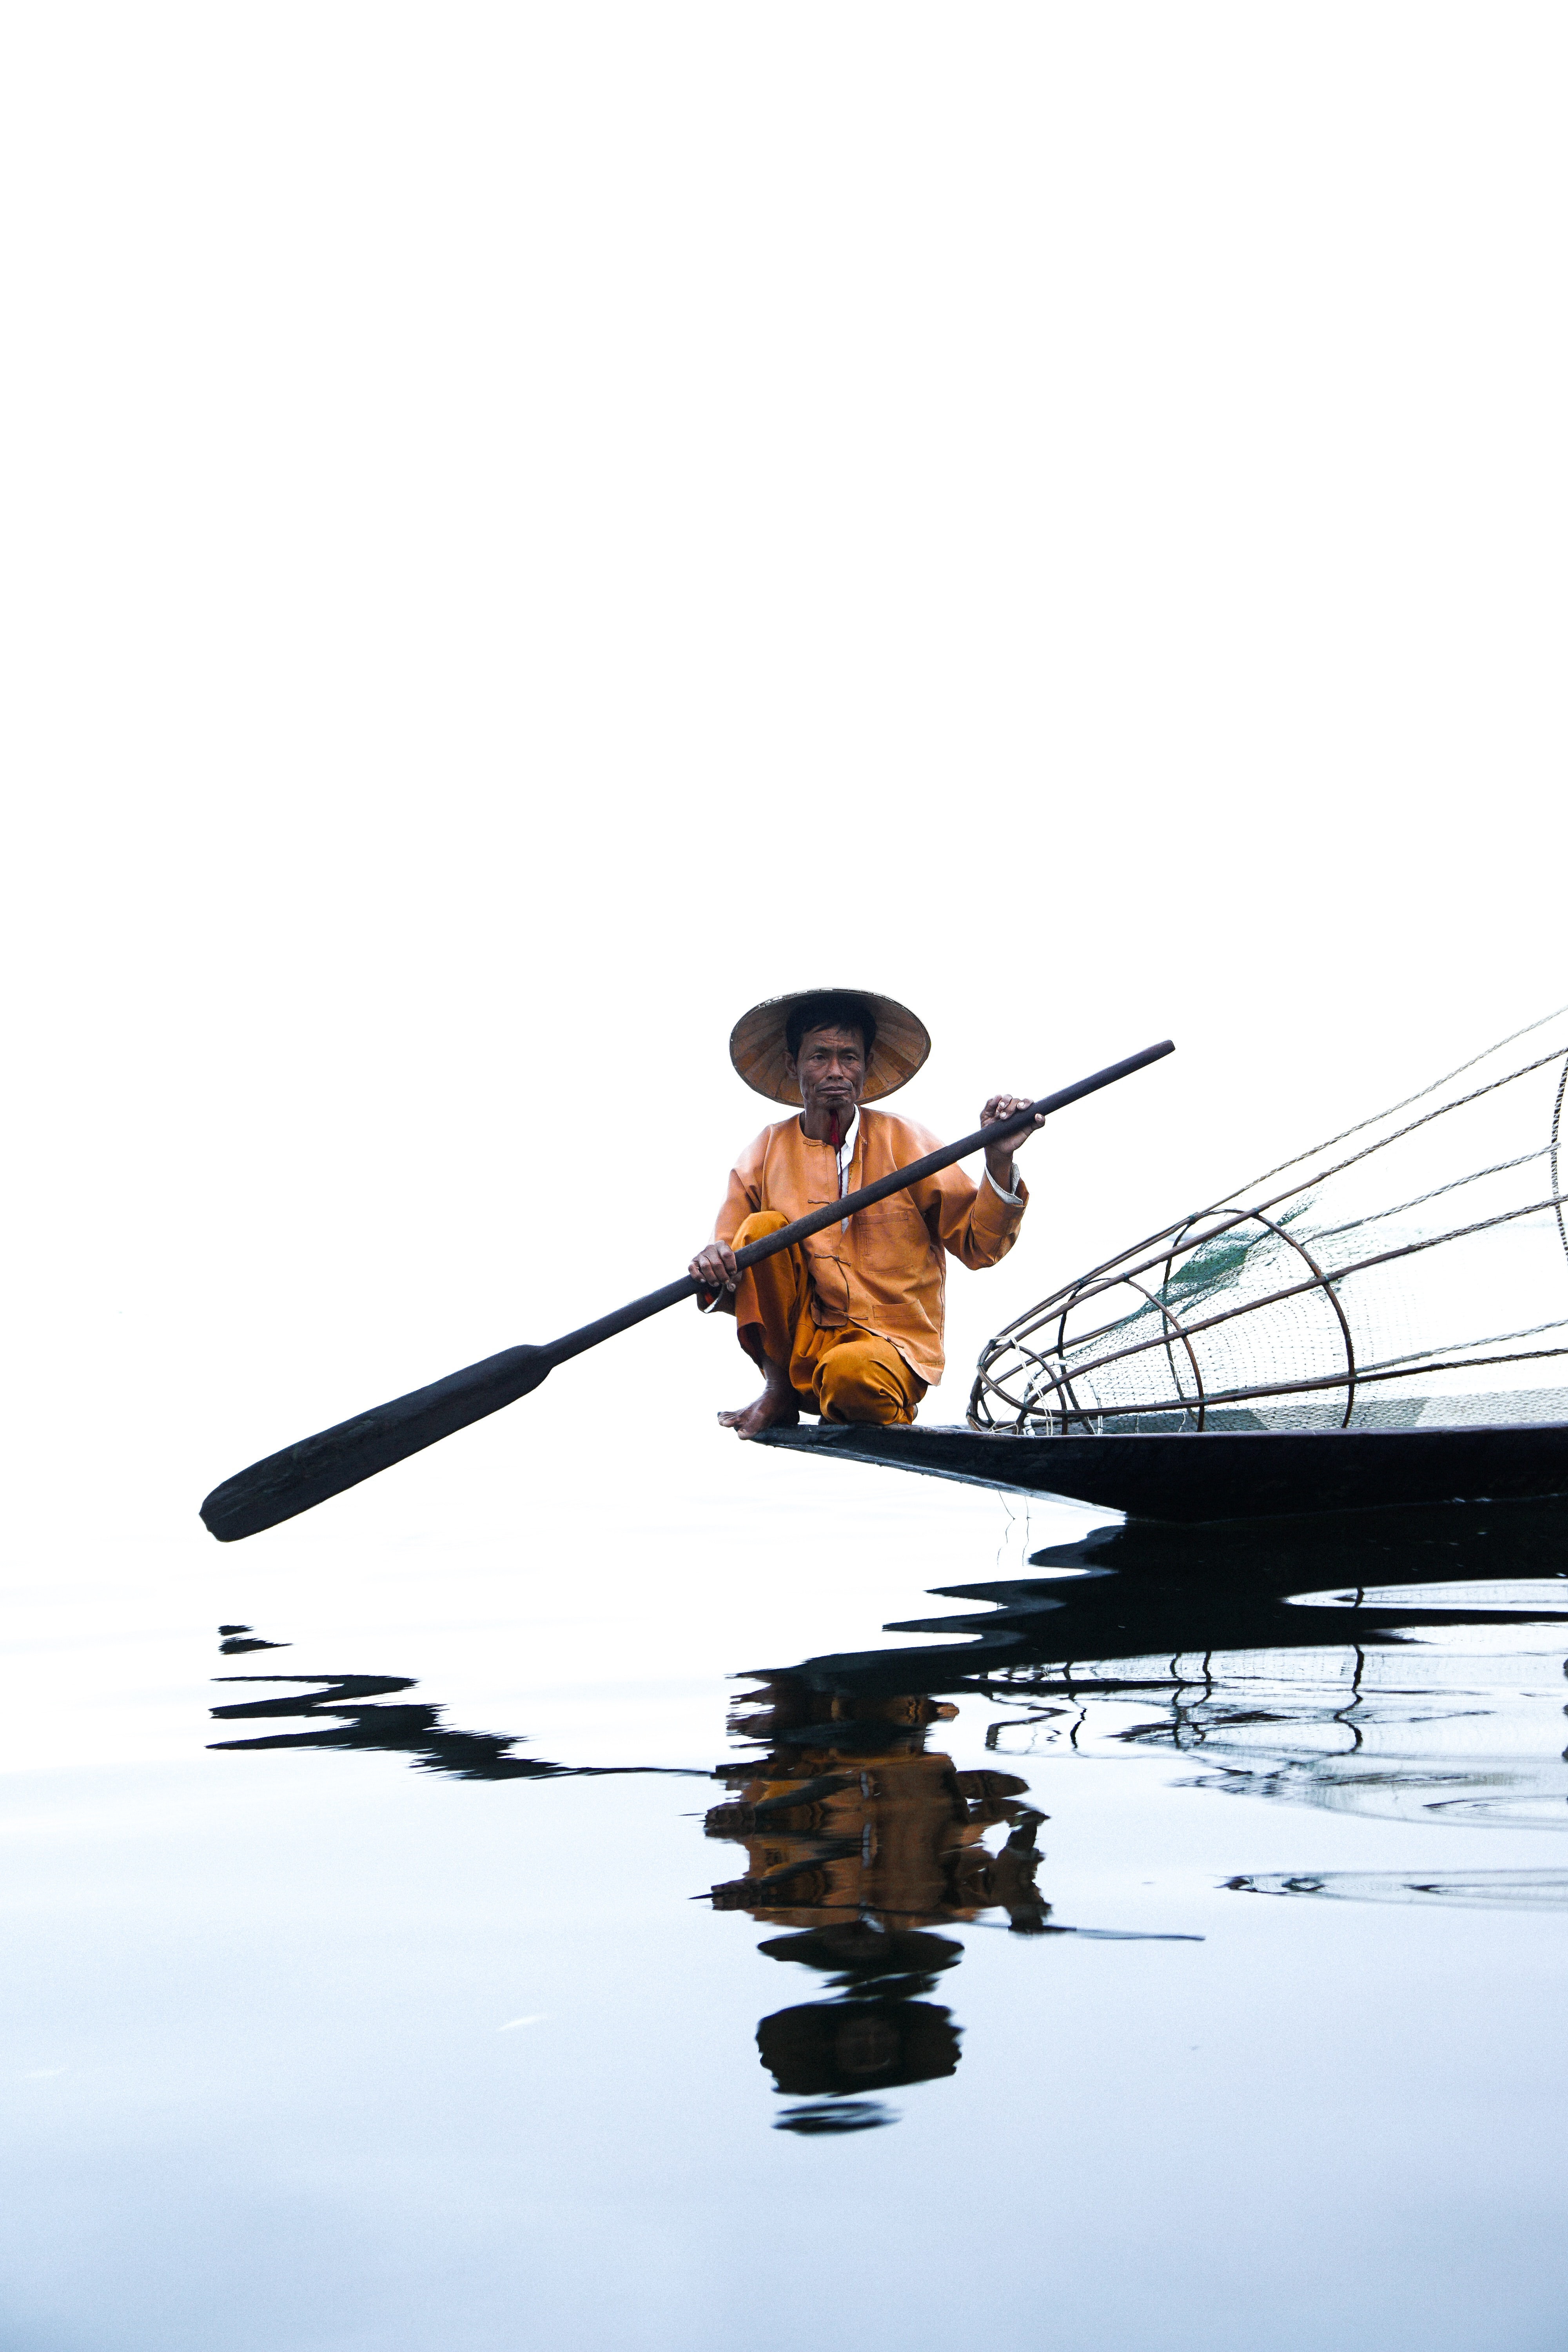 man on boat holding paddle